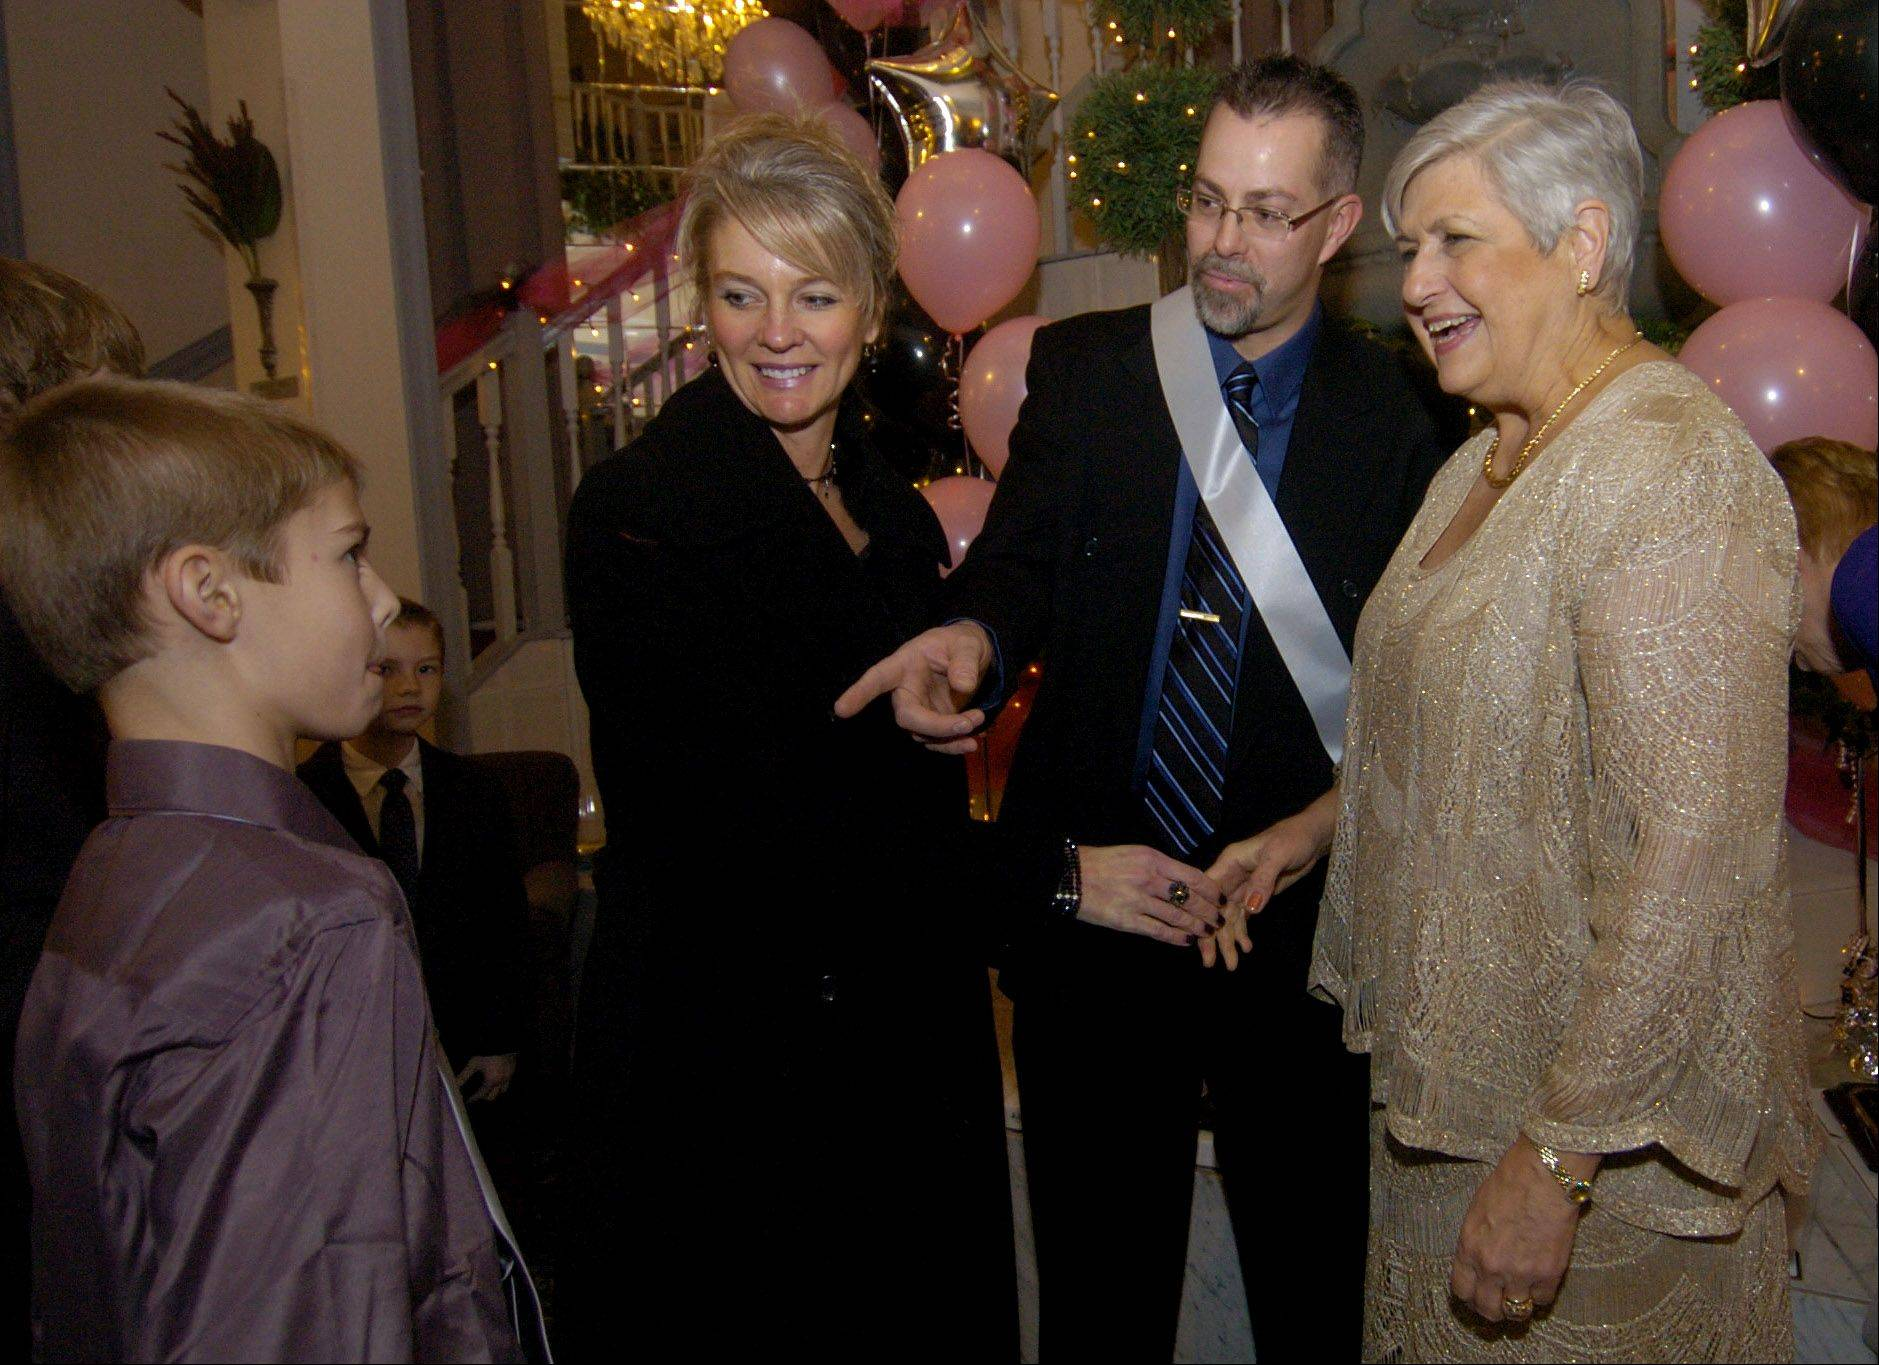 Mount Prospect Mayor Irvana Wilks, right, meets with resident Mike Jensen and his family during last year's Celestial Celebration banquet. This year's event, highlighted by the awarding of 'Shining Star' honors, takes place Feb. 1.